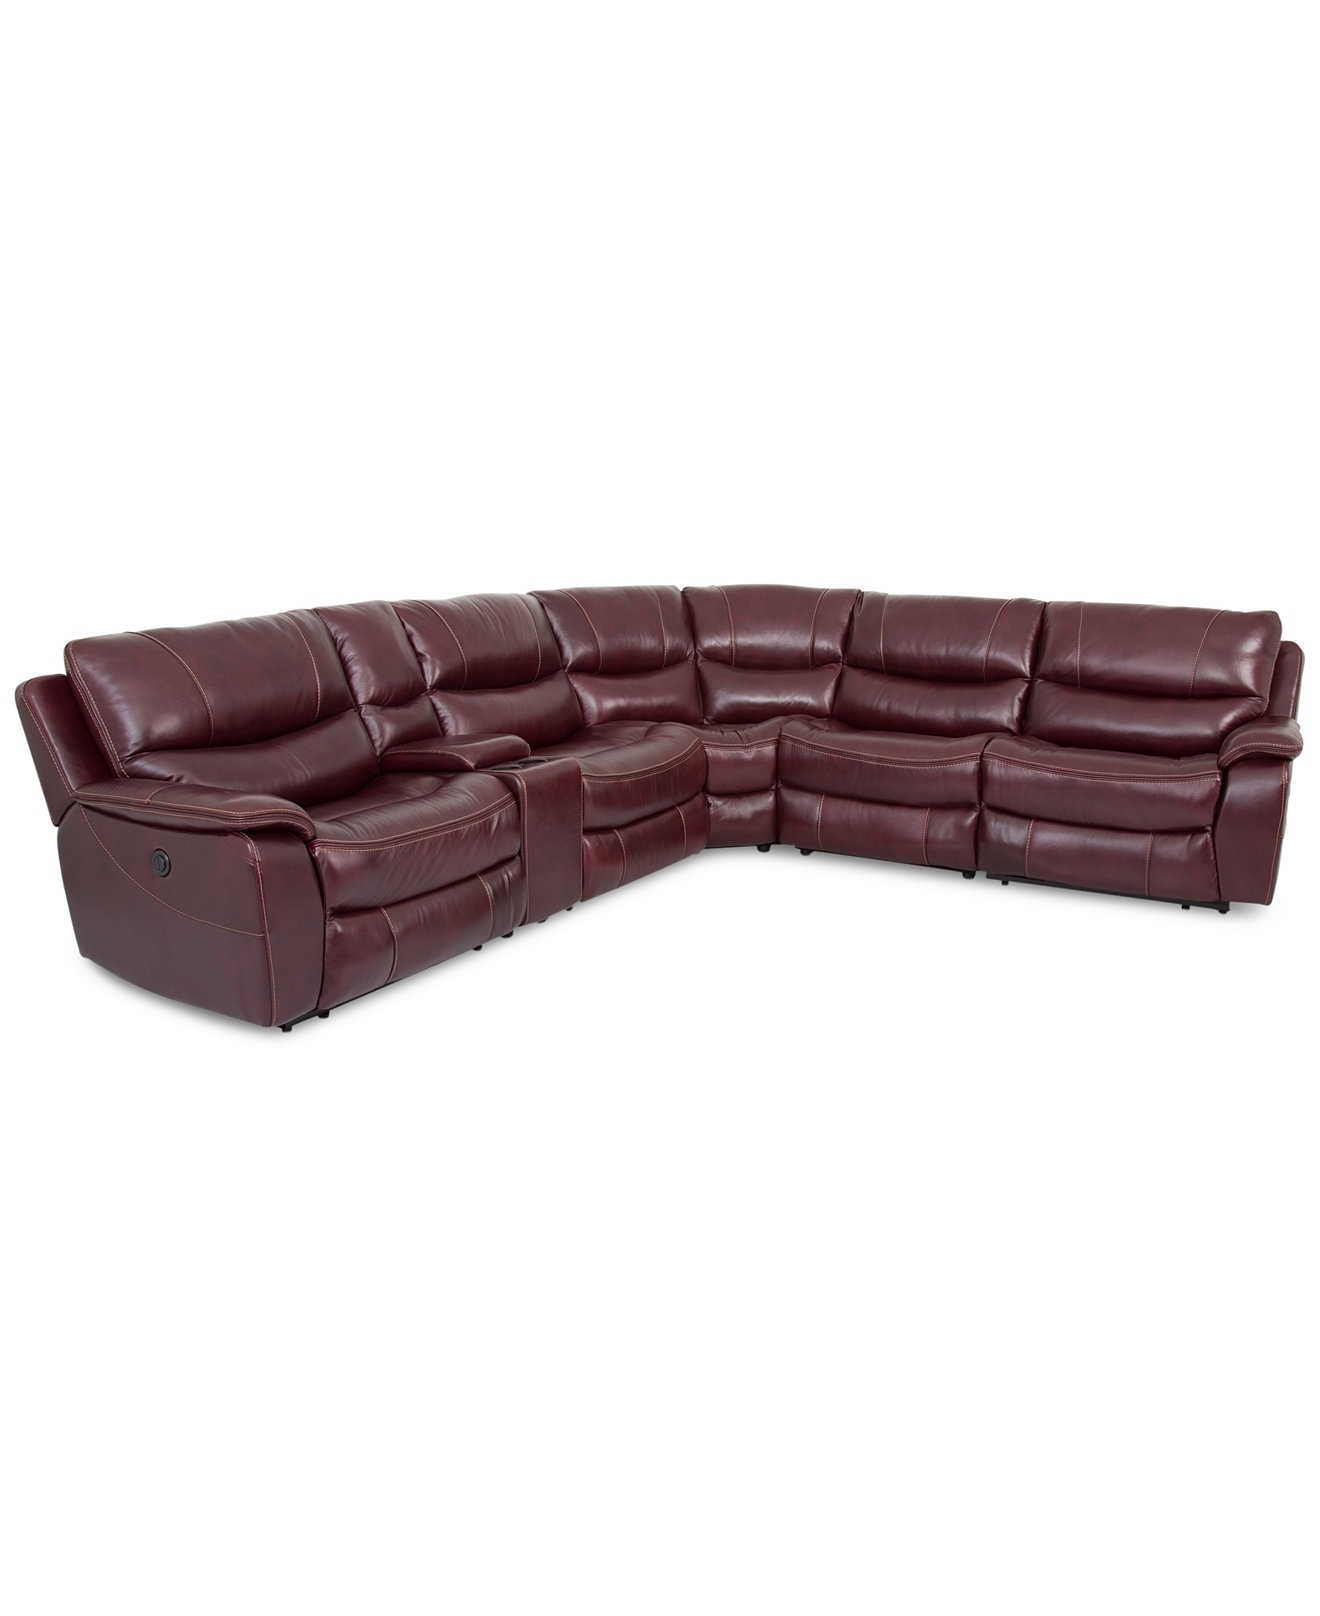 Closeout! Daren Leather 6 Pc Sectional Sofa With 3 Power Recliners Throughout Jedd Fabric Reclining Sectional Sofas (Image 5 of 10)